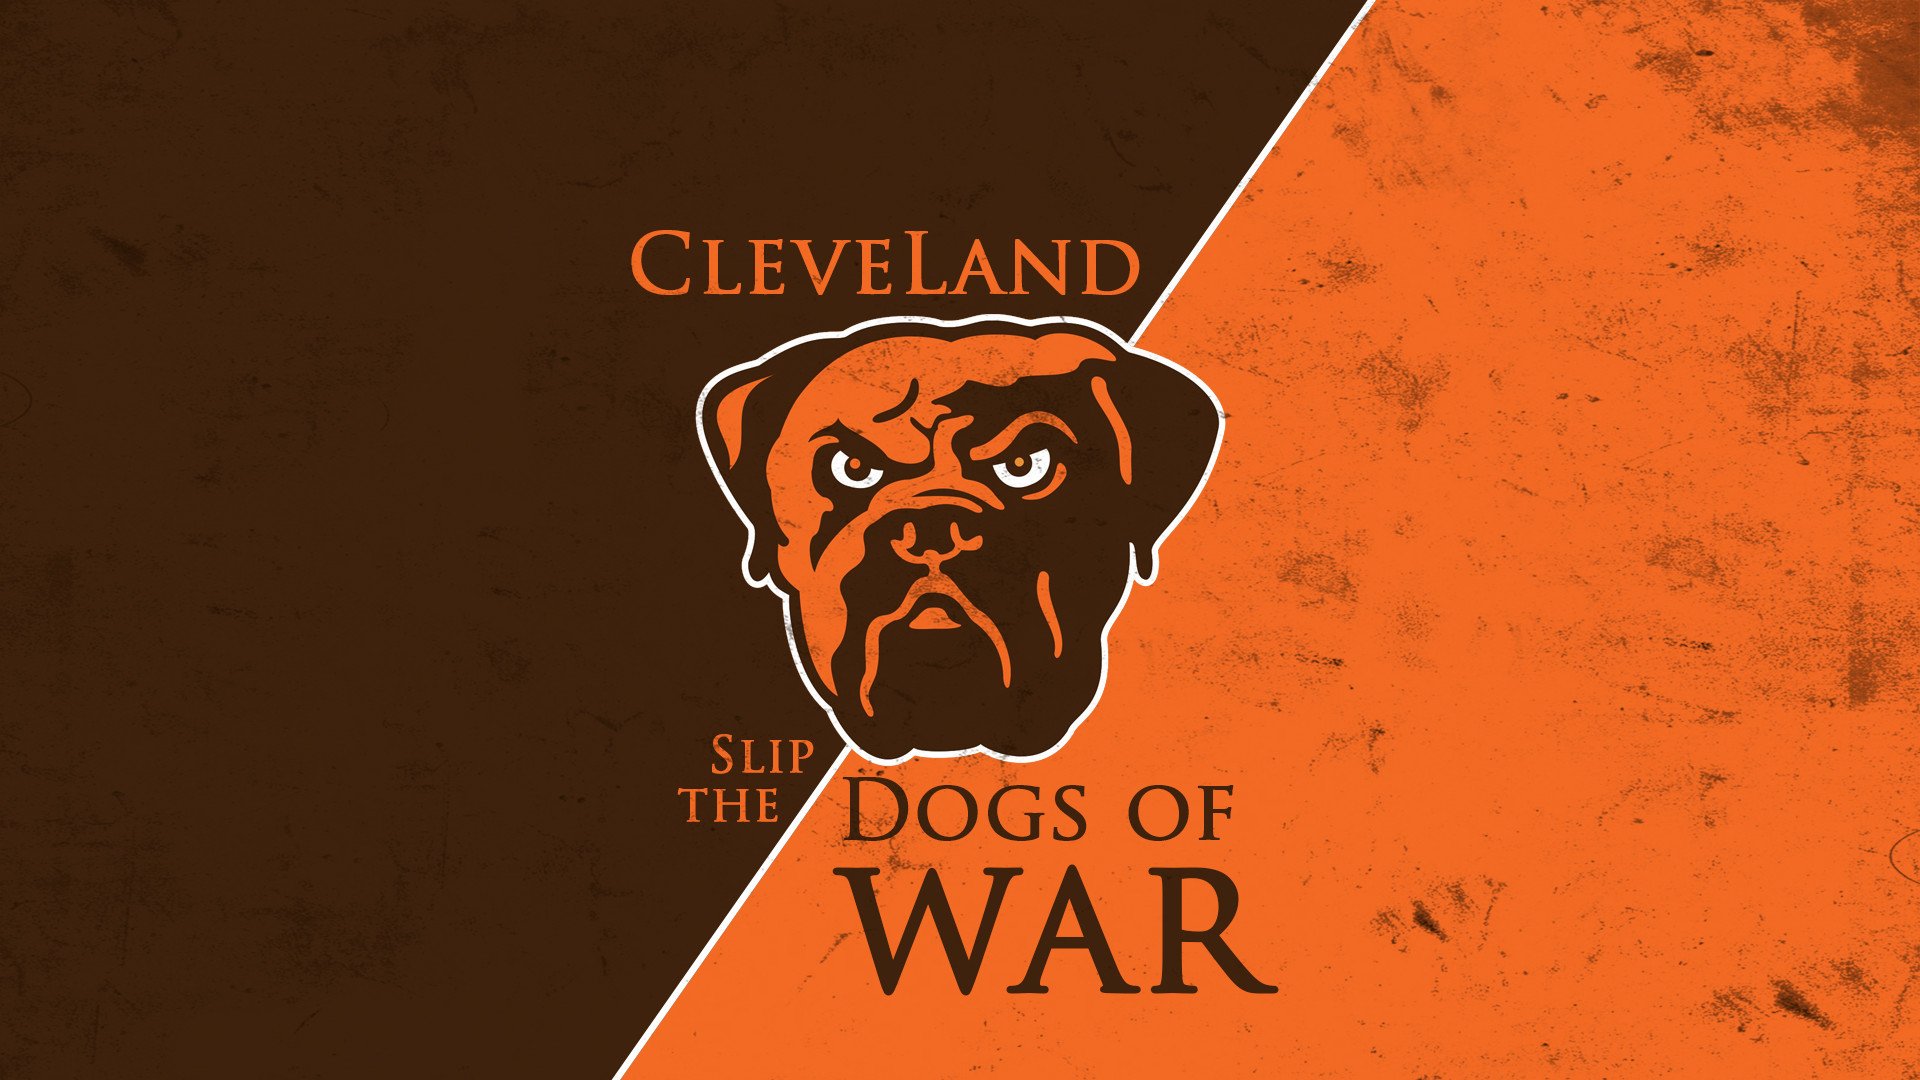 CLEVELAND BROWNS nfl football rl wallpaper background 1920x1080